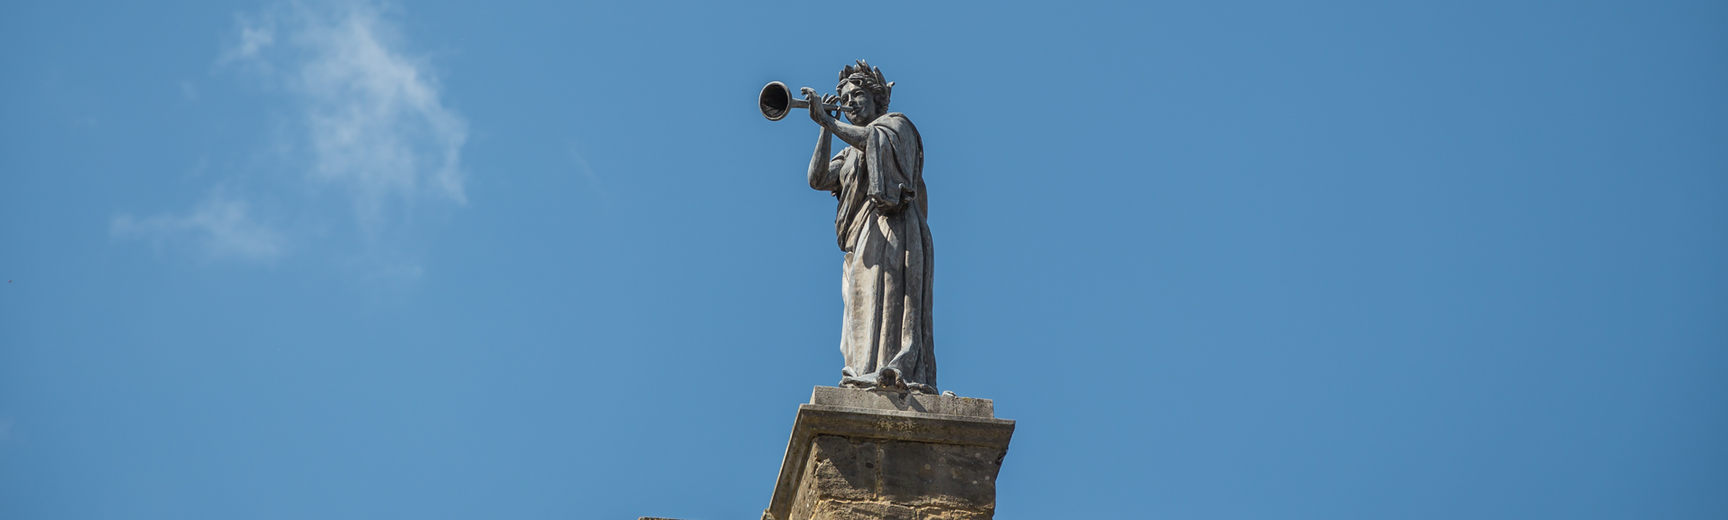 Statue of one of the nine Muses above the Clarendon Building, Oxford